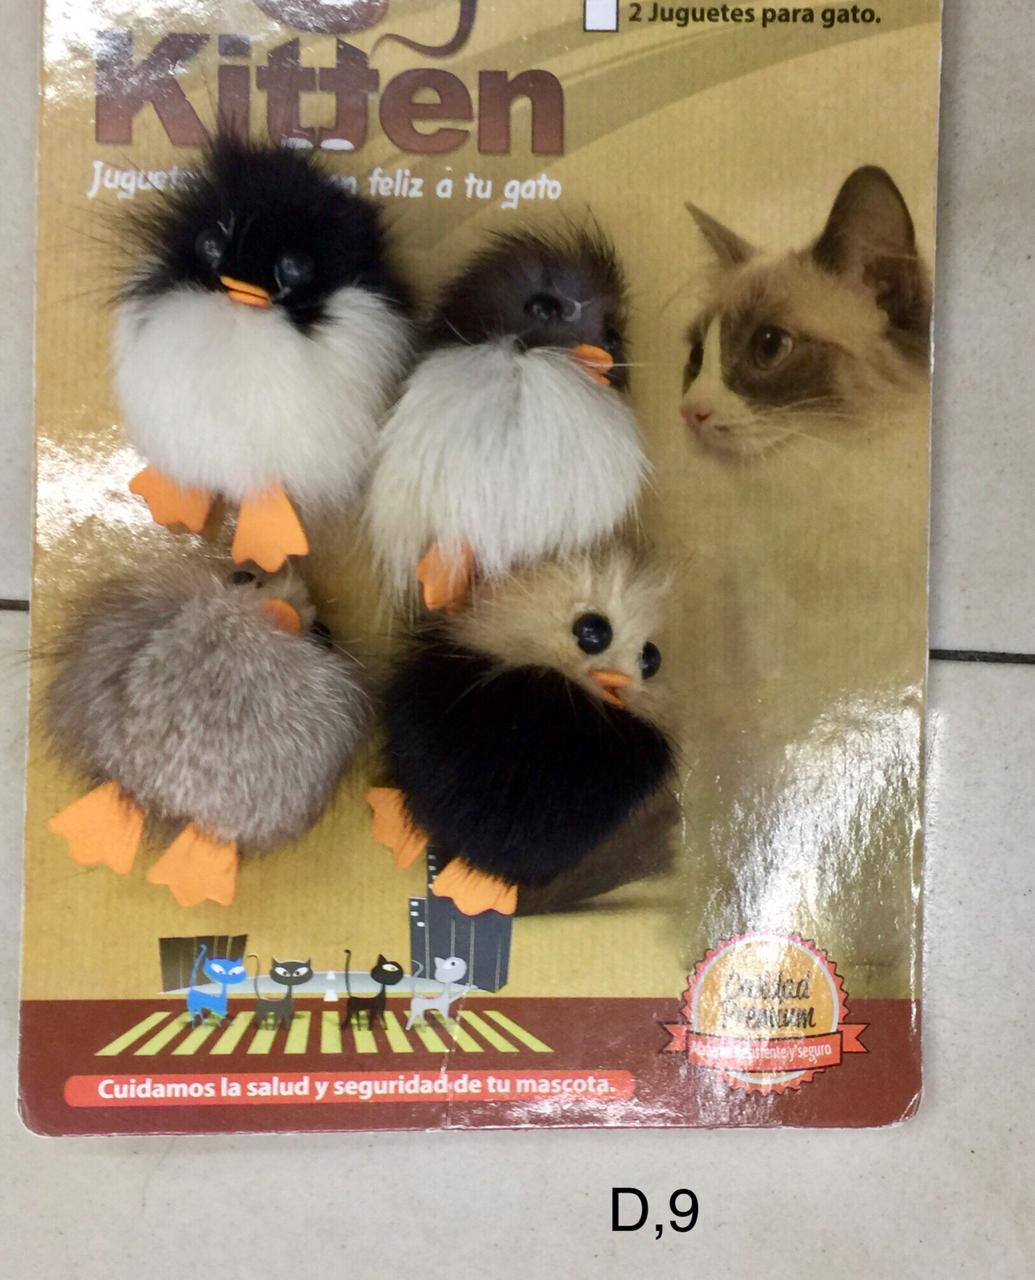 Toy Tetra Mouse For Cats And Kittens - Pet Accessories - Pet Store - Pet supplies